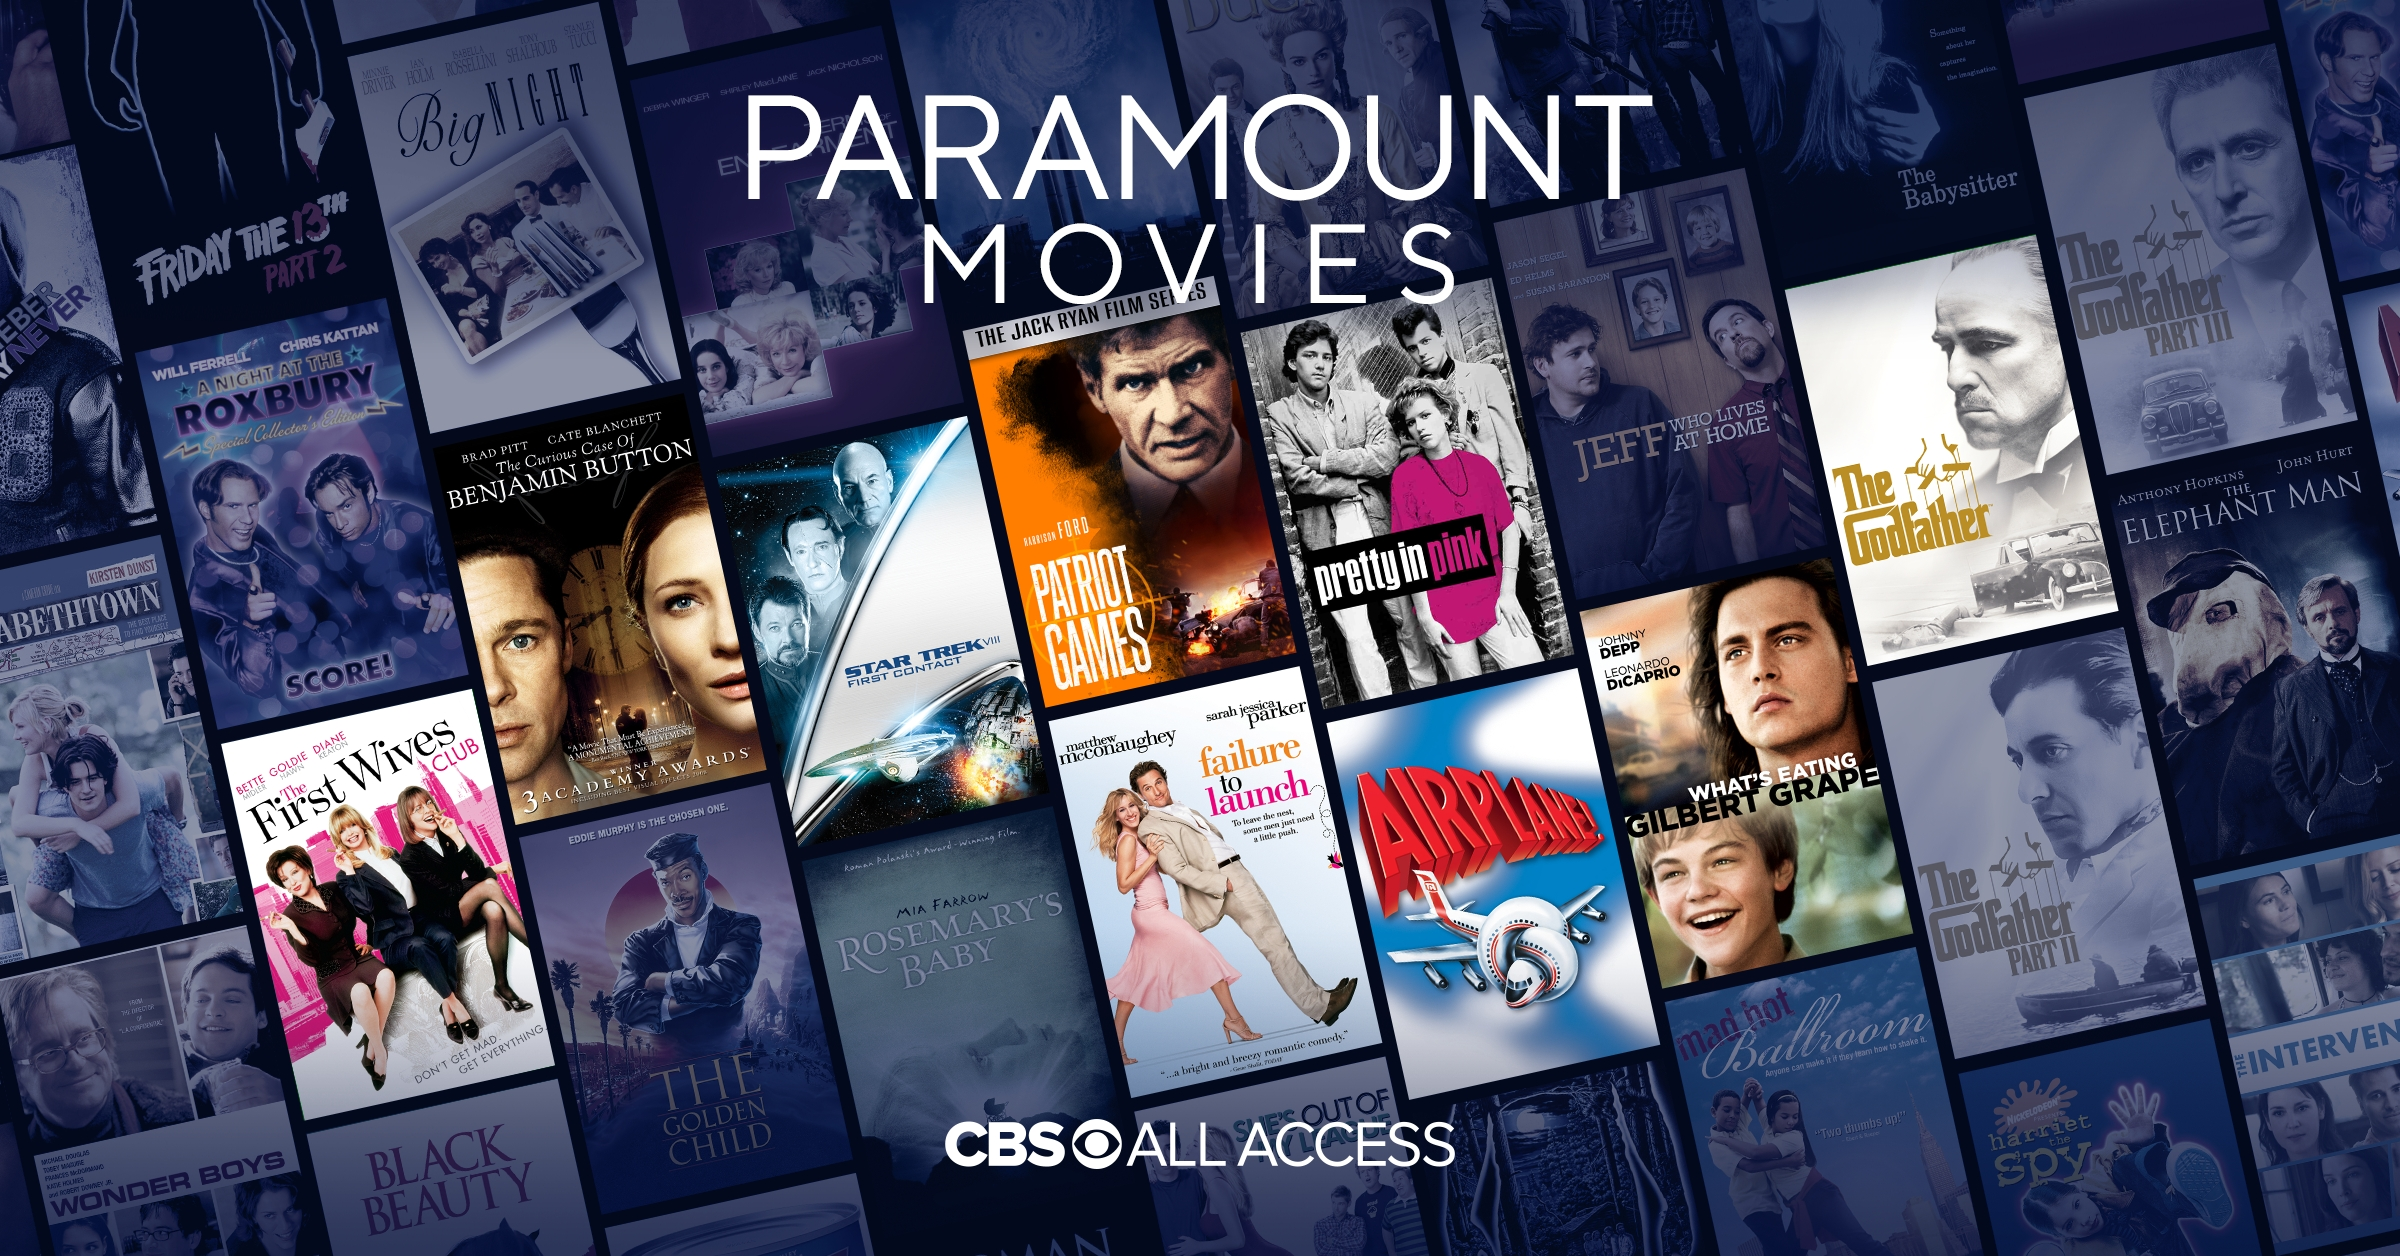 Cbs All Access Adds More Than 100 Films From Paramount Pictures Business Wire